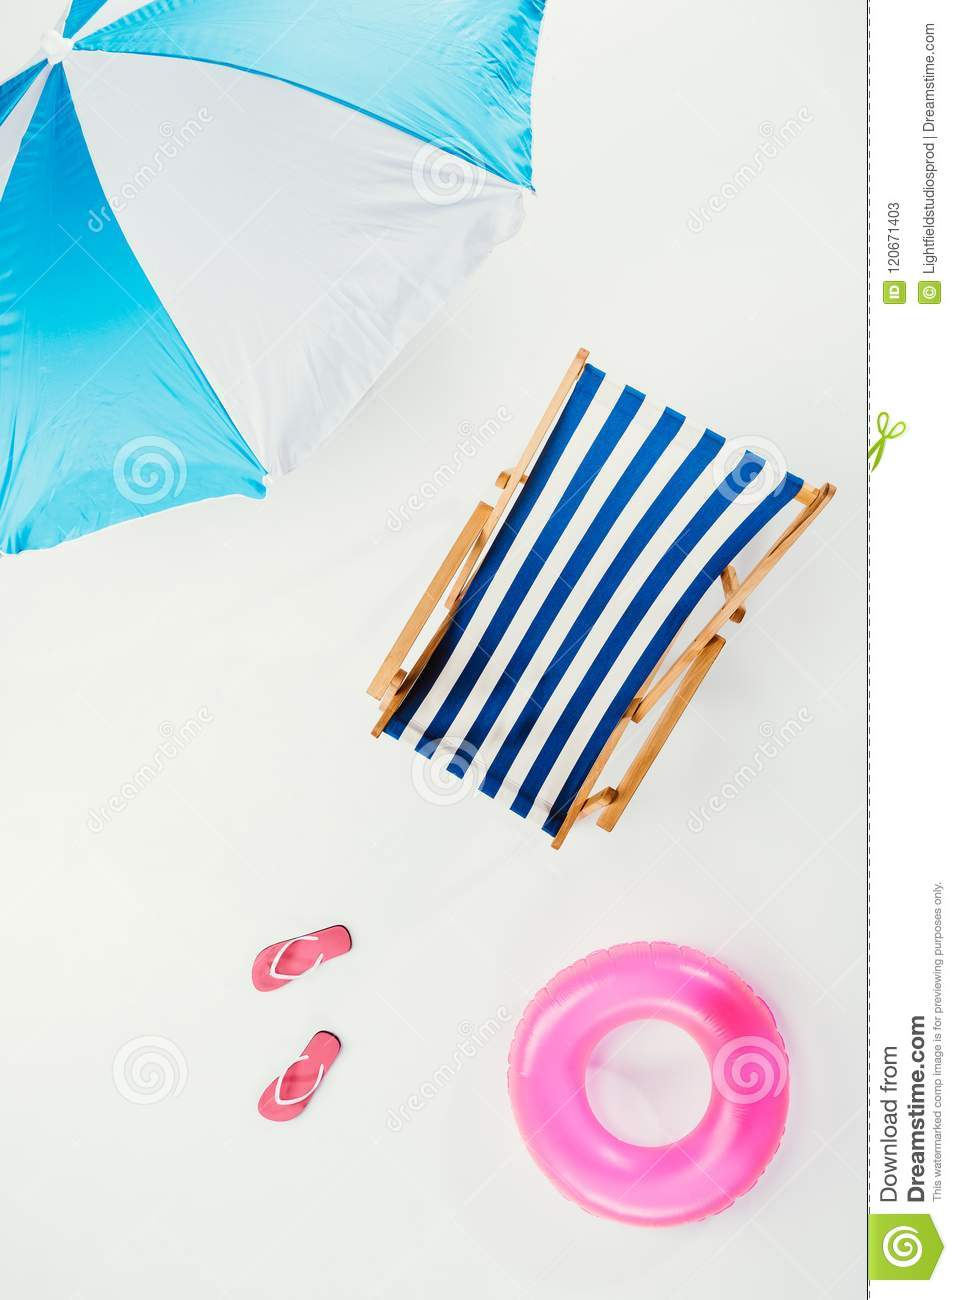 Flip Flop Chair Bed Top View Of Beach Umbrella Striped Beach Chair Flip Flops And